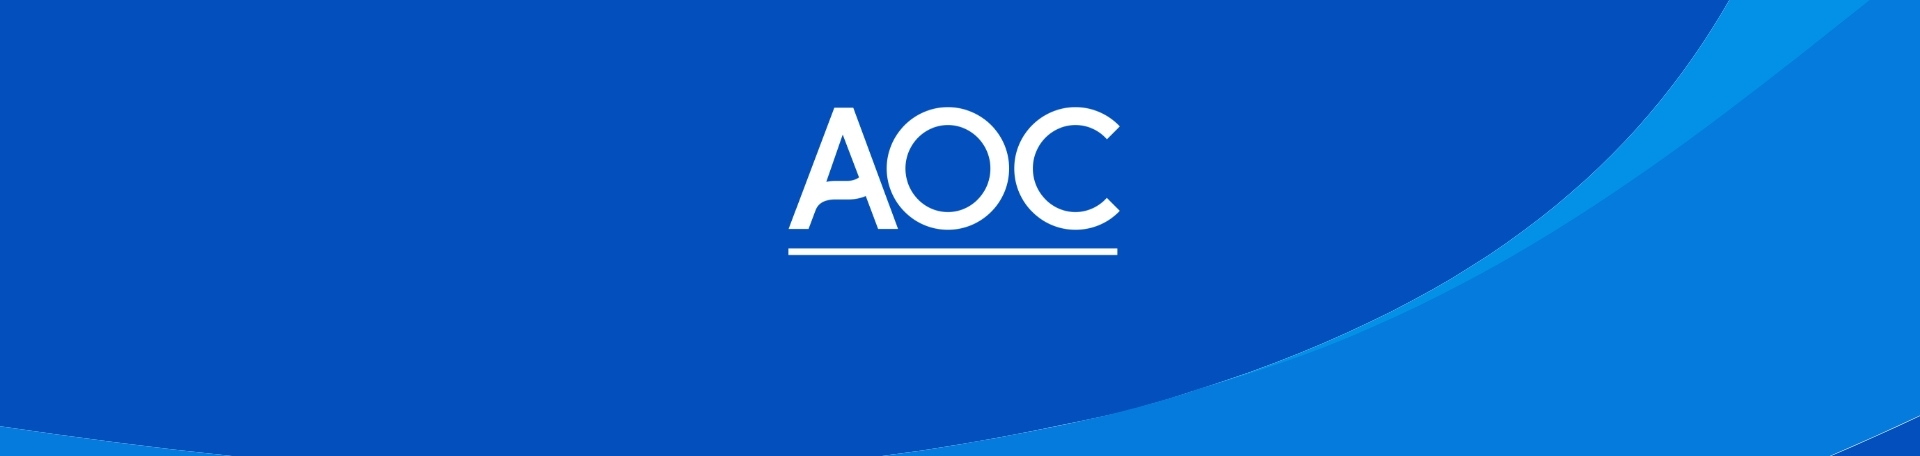 AOC announces Dr. John McAlvin as new R&D Vice President